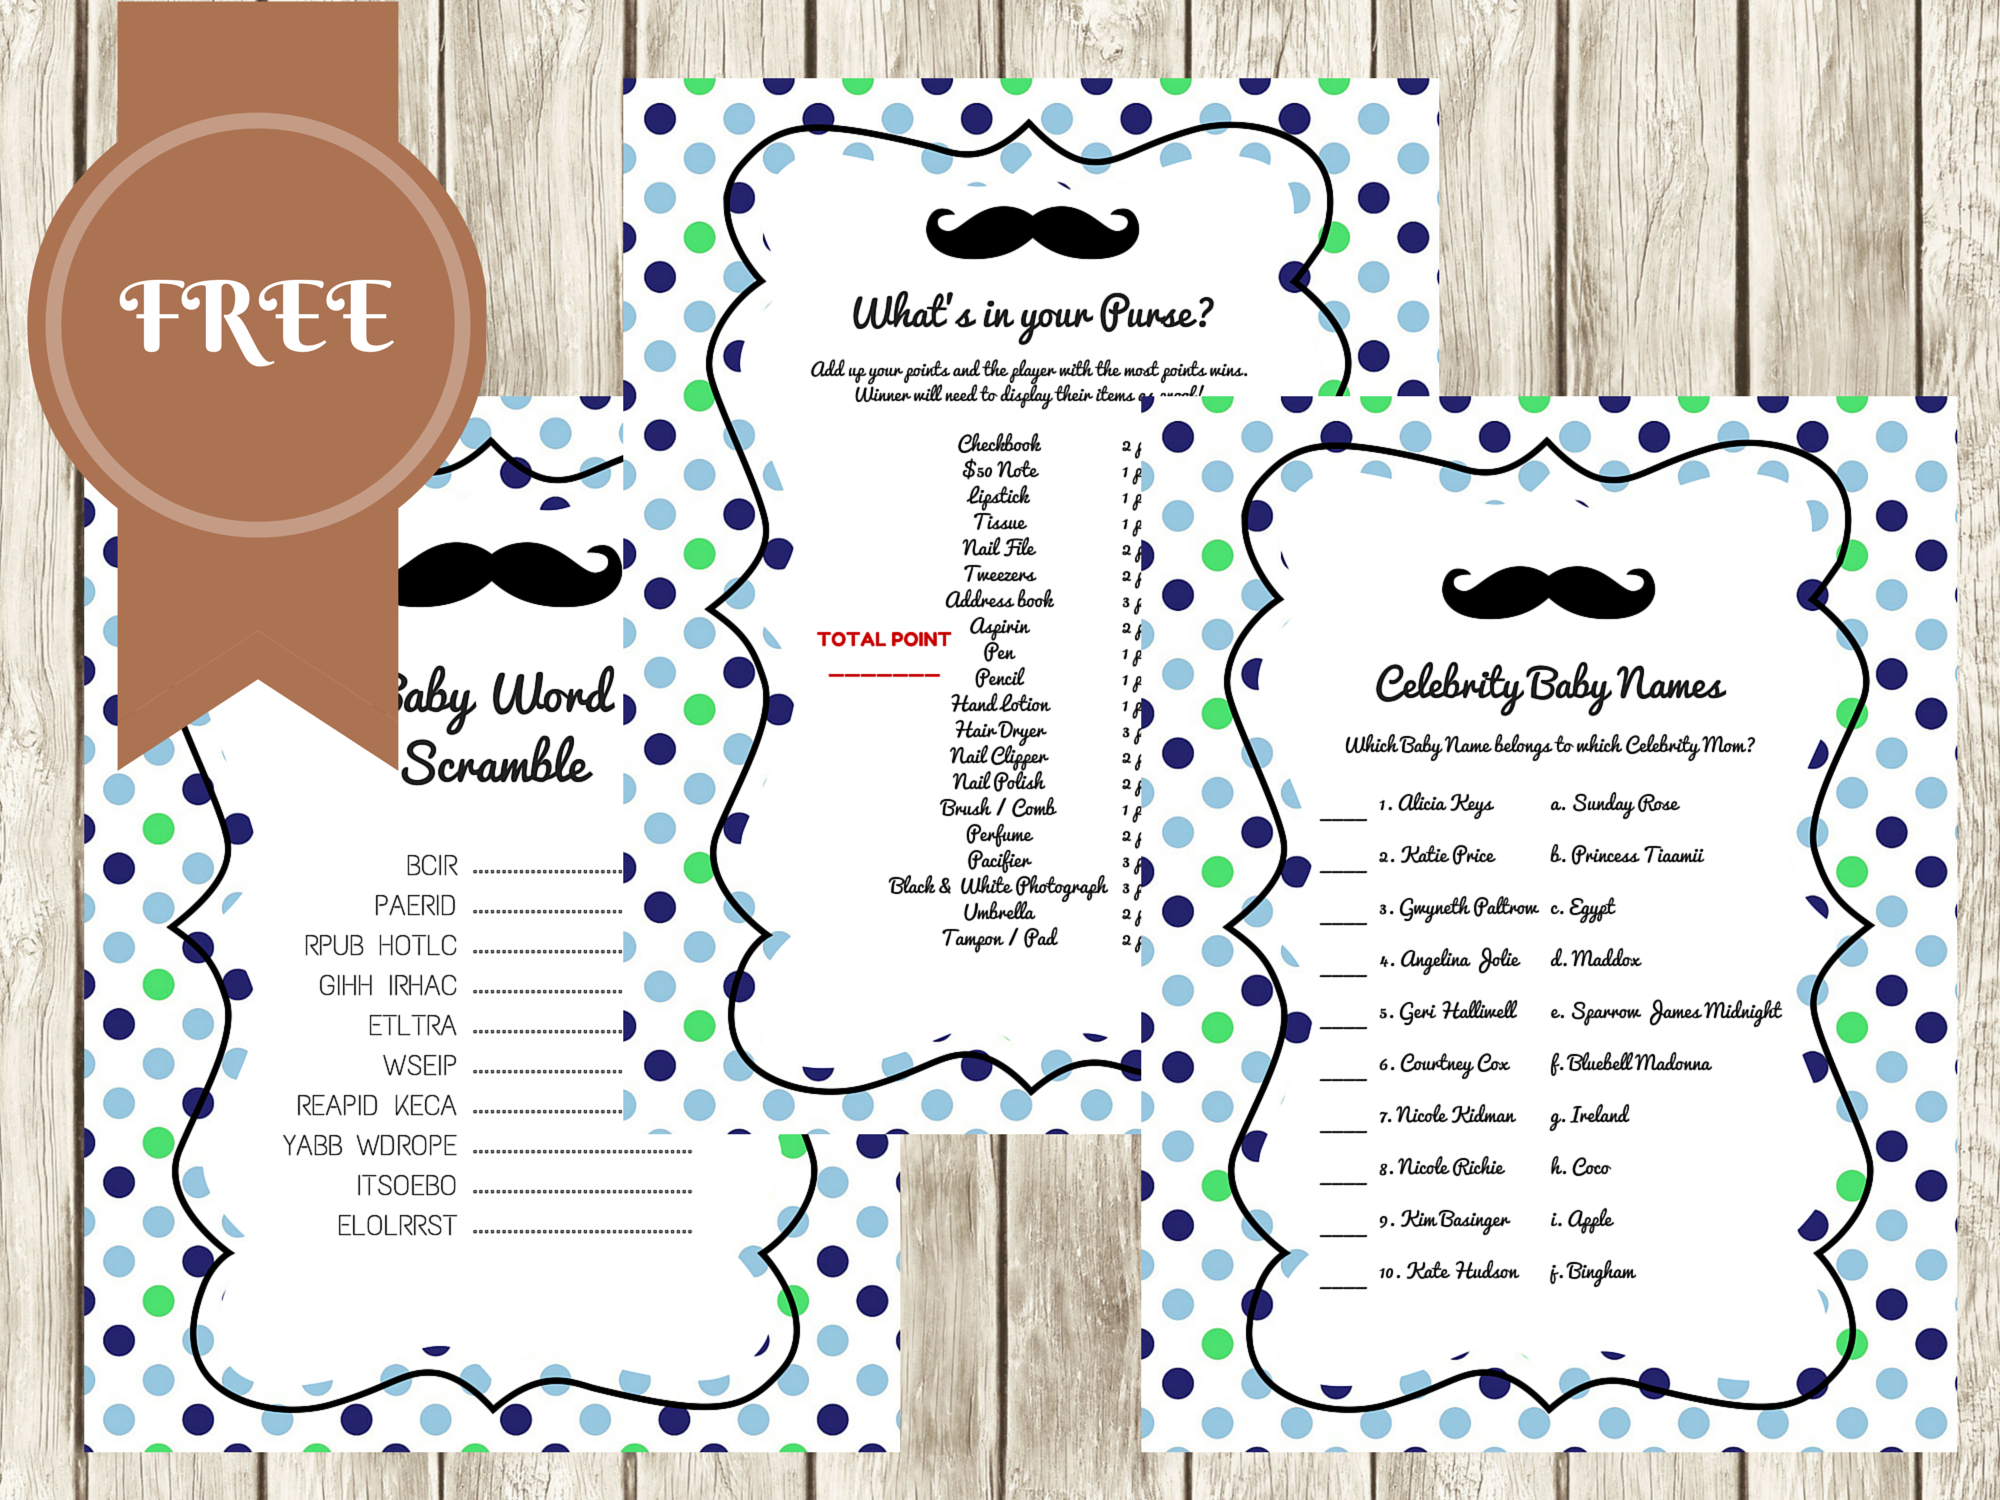 Free Mustache Baby Shower Games - Baby Shower Ideas - Themes - Games - Free Printable Baby Shower Game What's In Your Purse